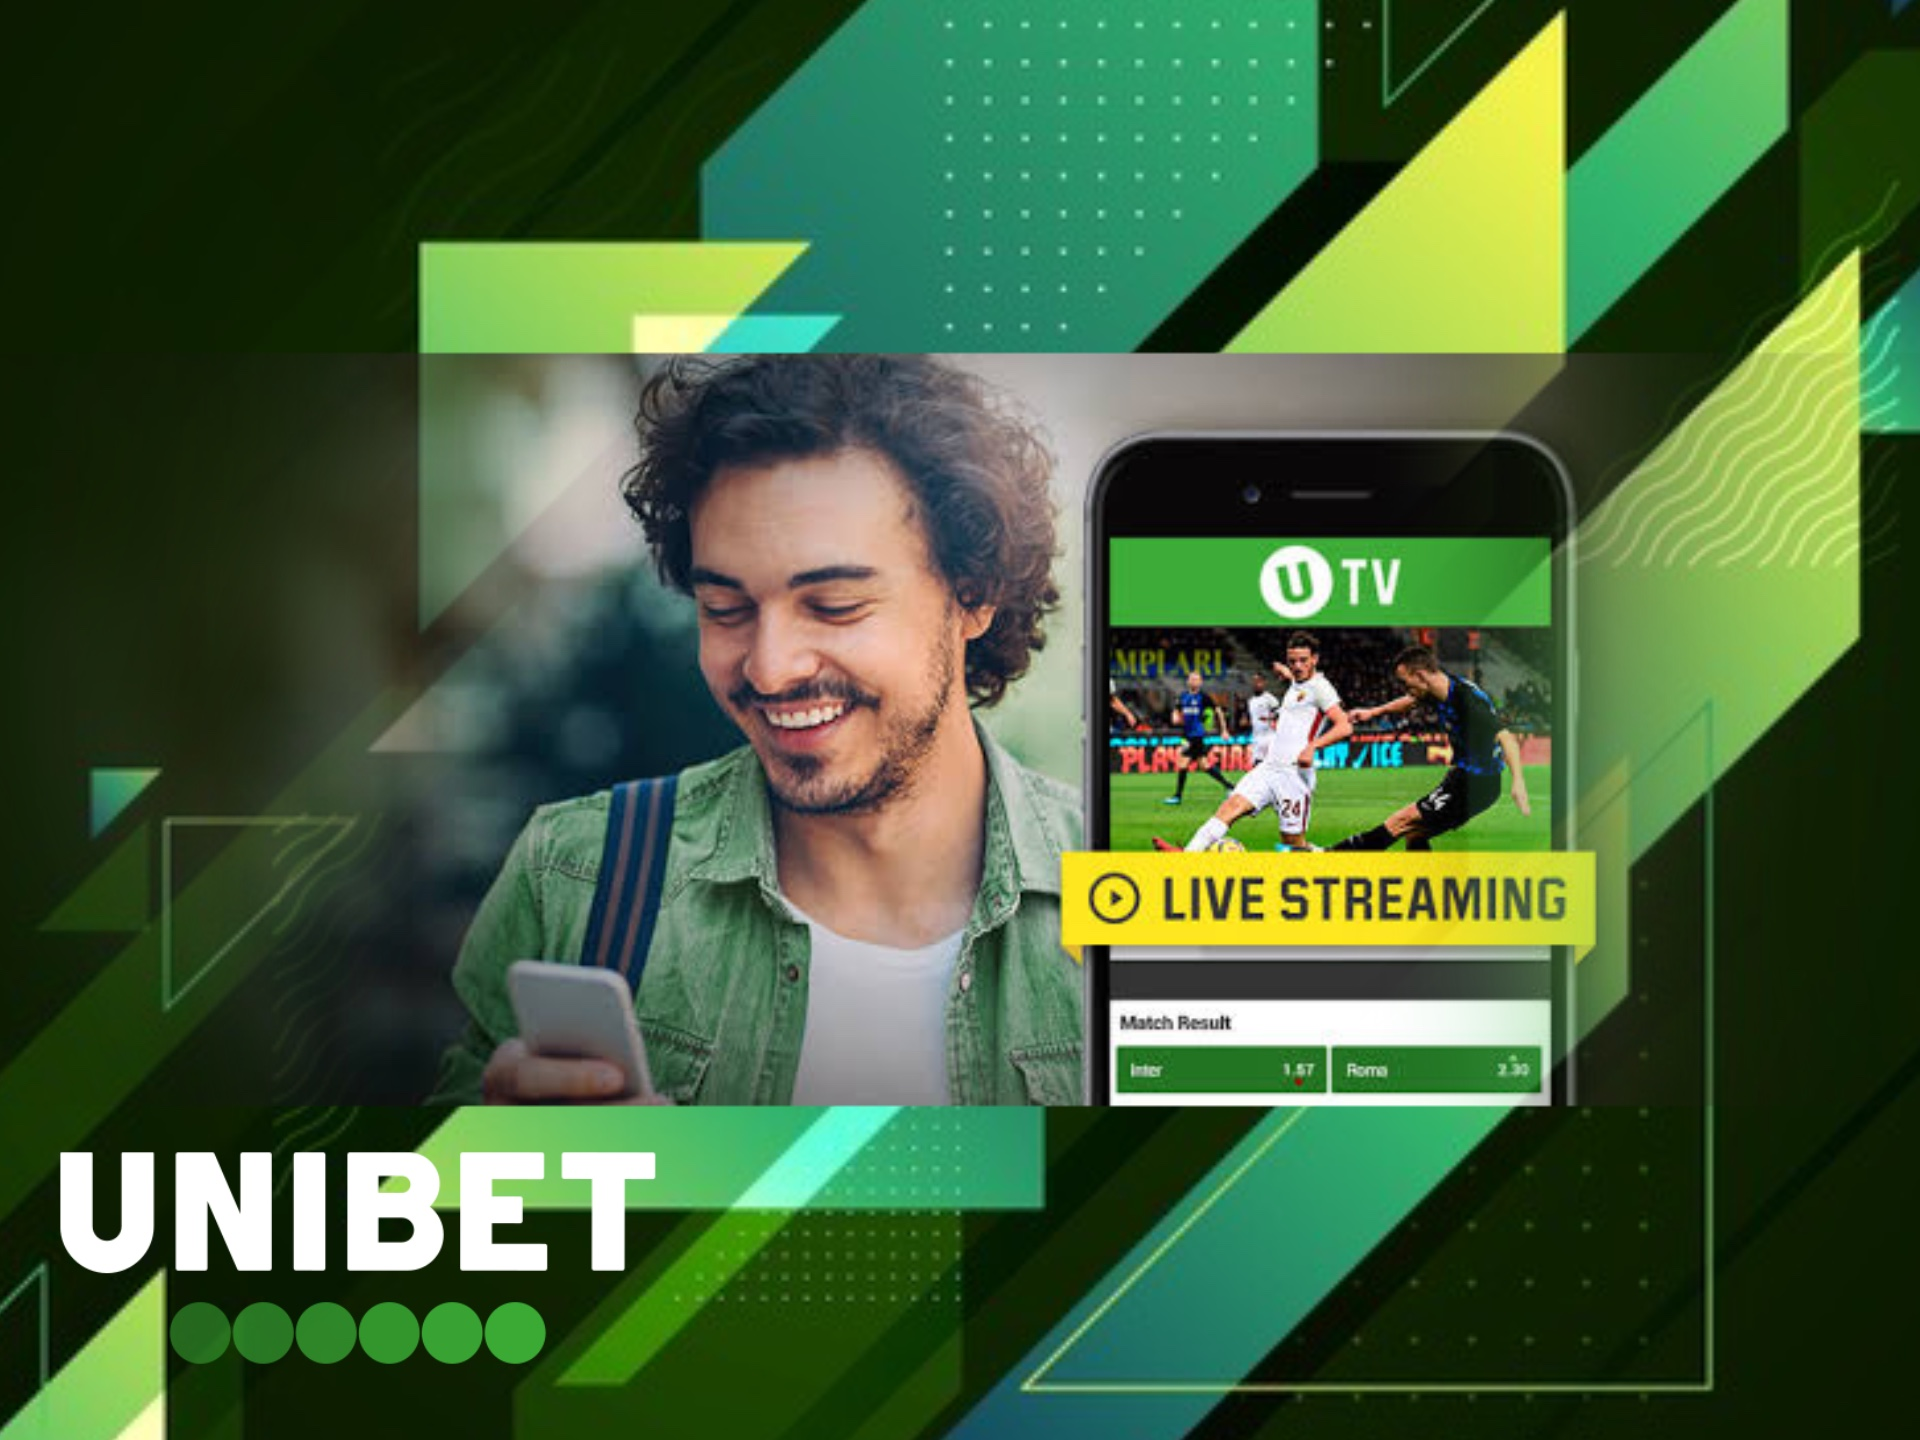 Expperience the atmosphere of live betting with Unibet TV.